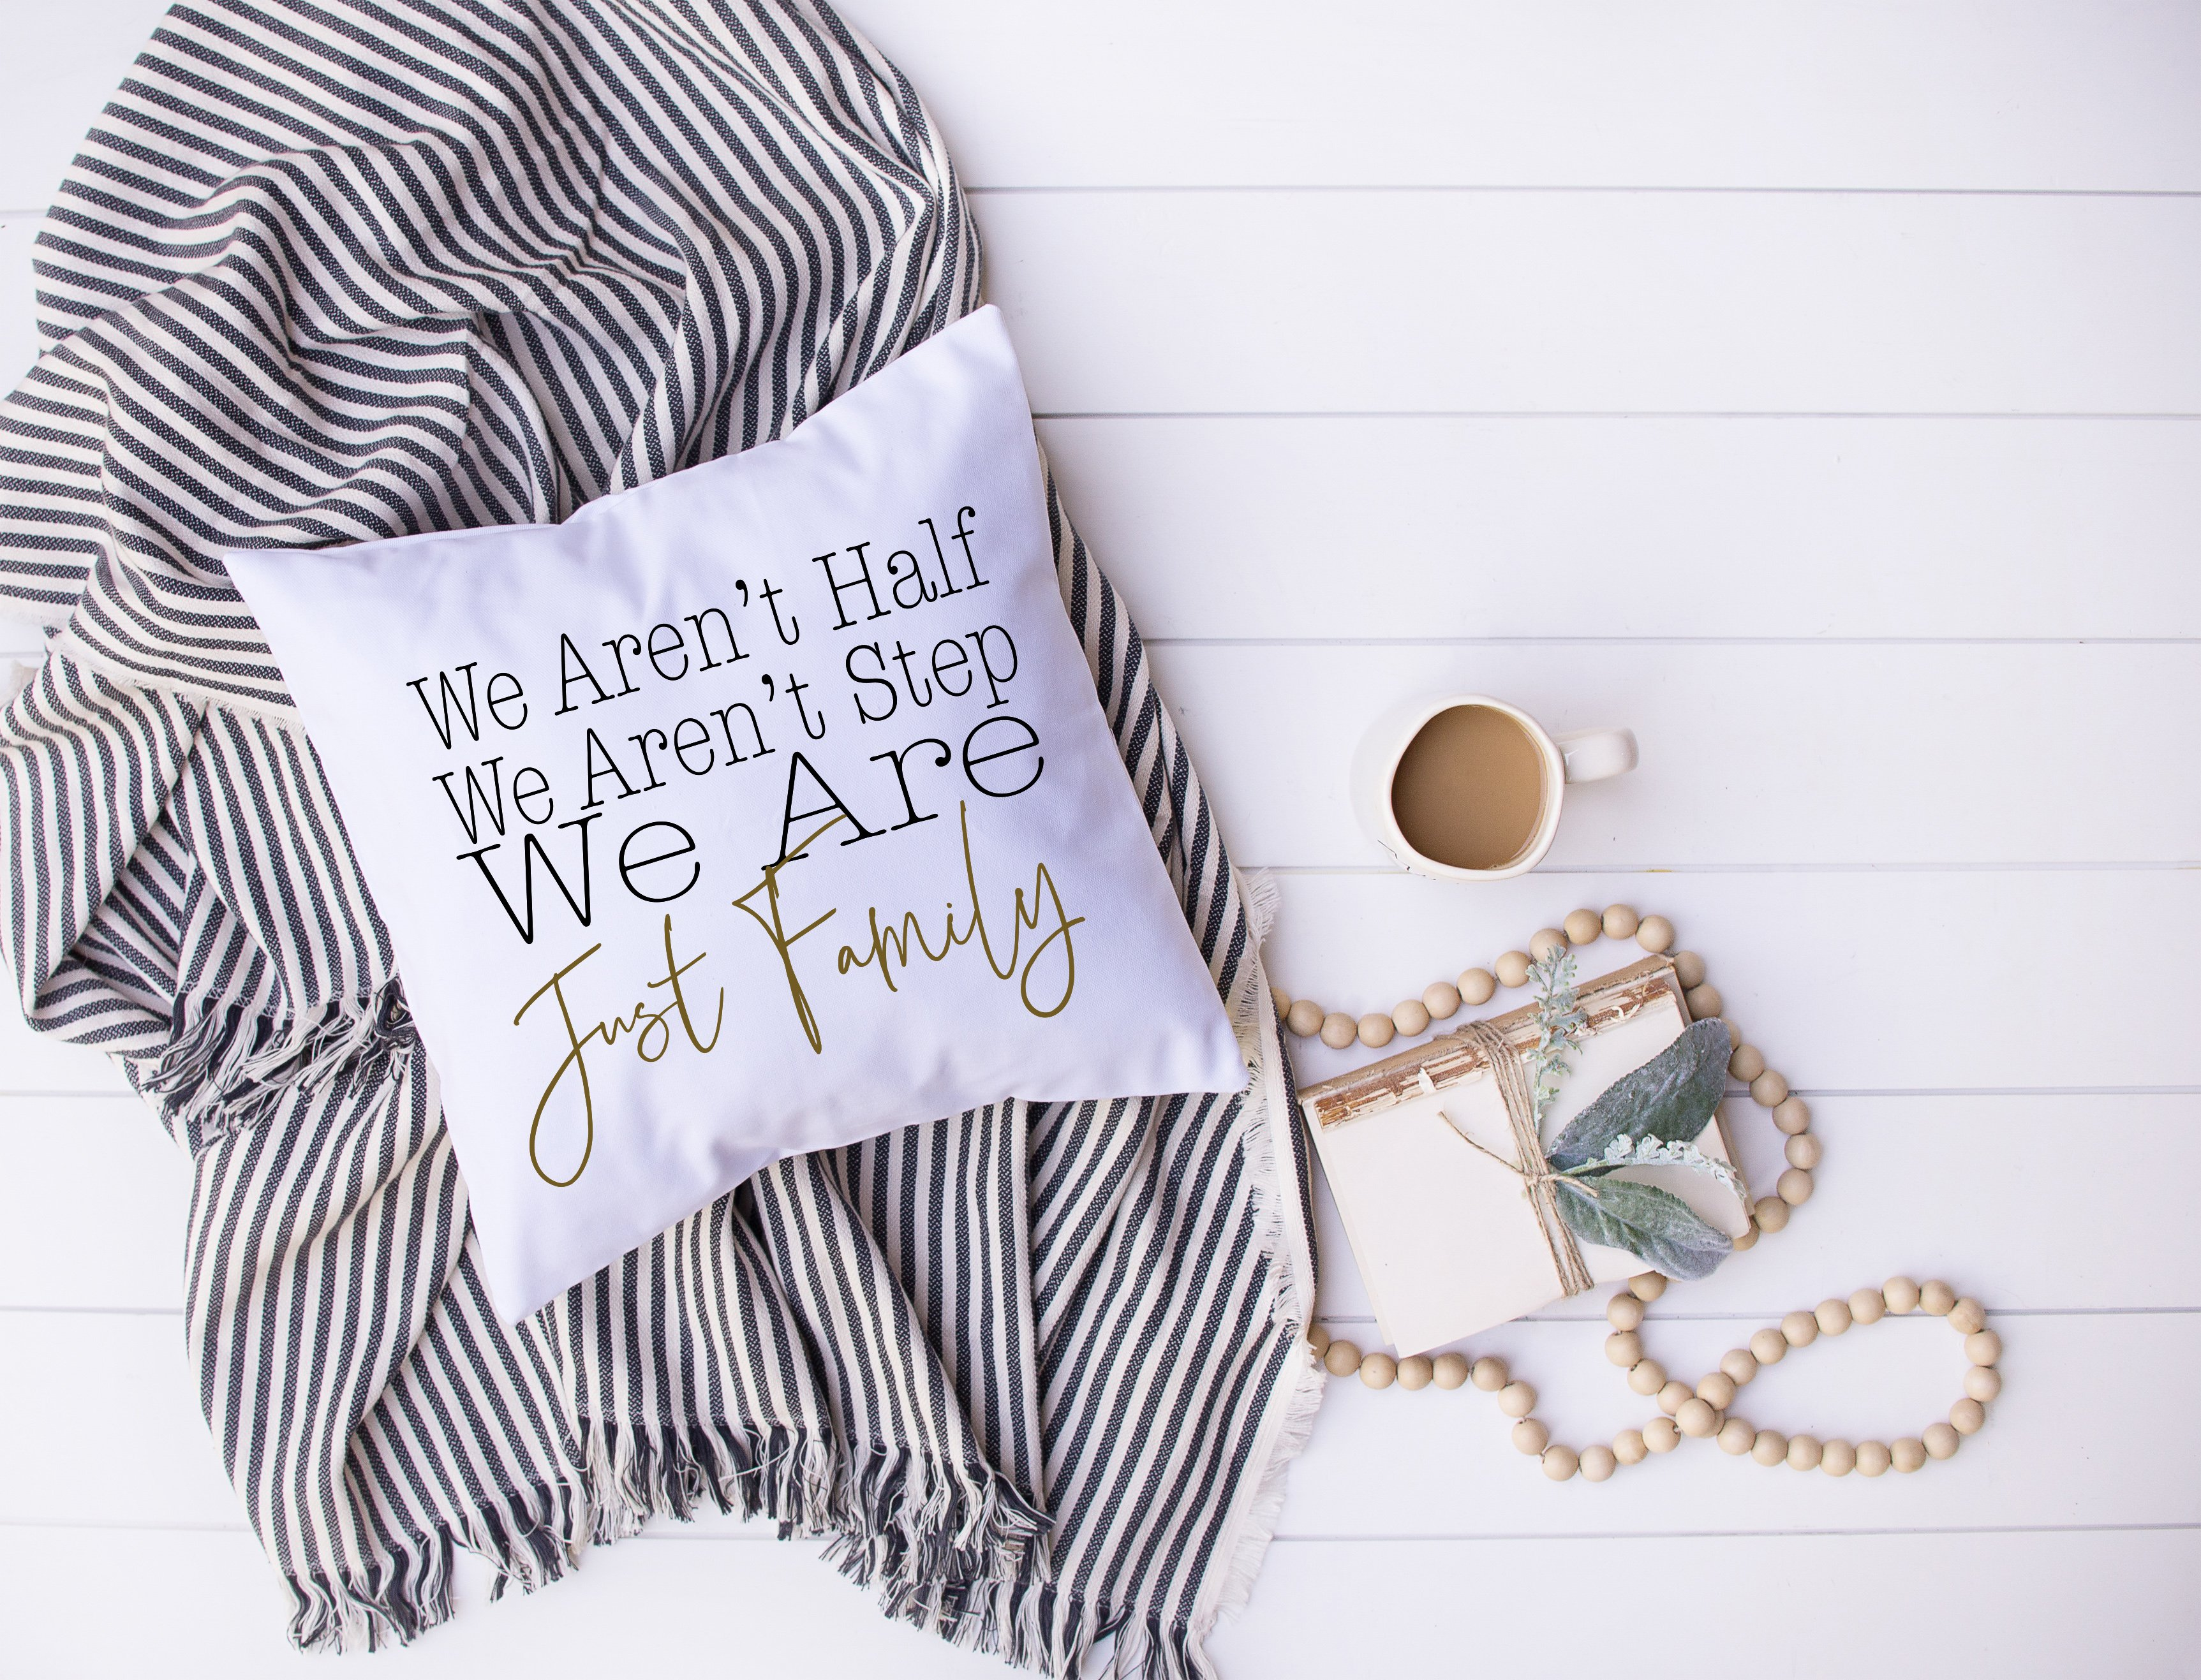 An image of a pillow that says We Are Just Family with black and white scarf in background and a necklace and coffee on the side.